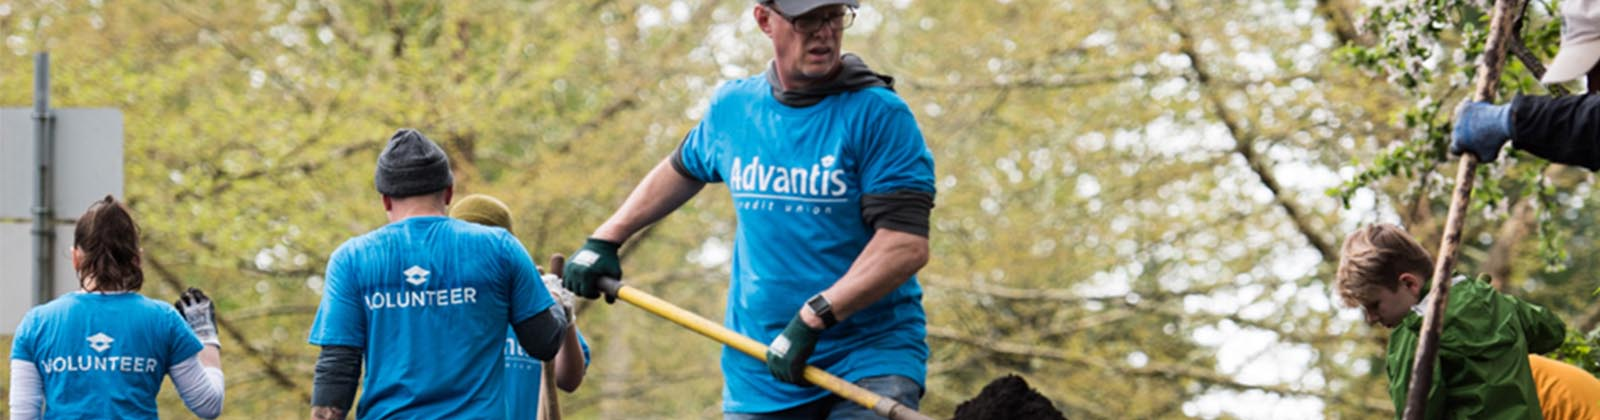 Advantis volunteers distributing bark mulch with SOLVE